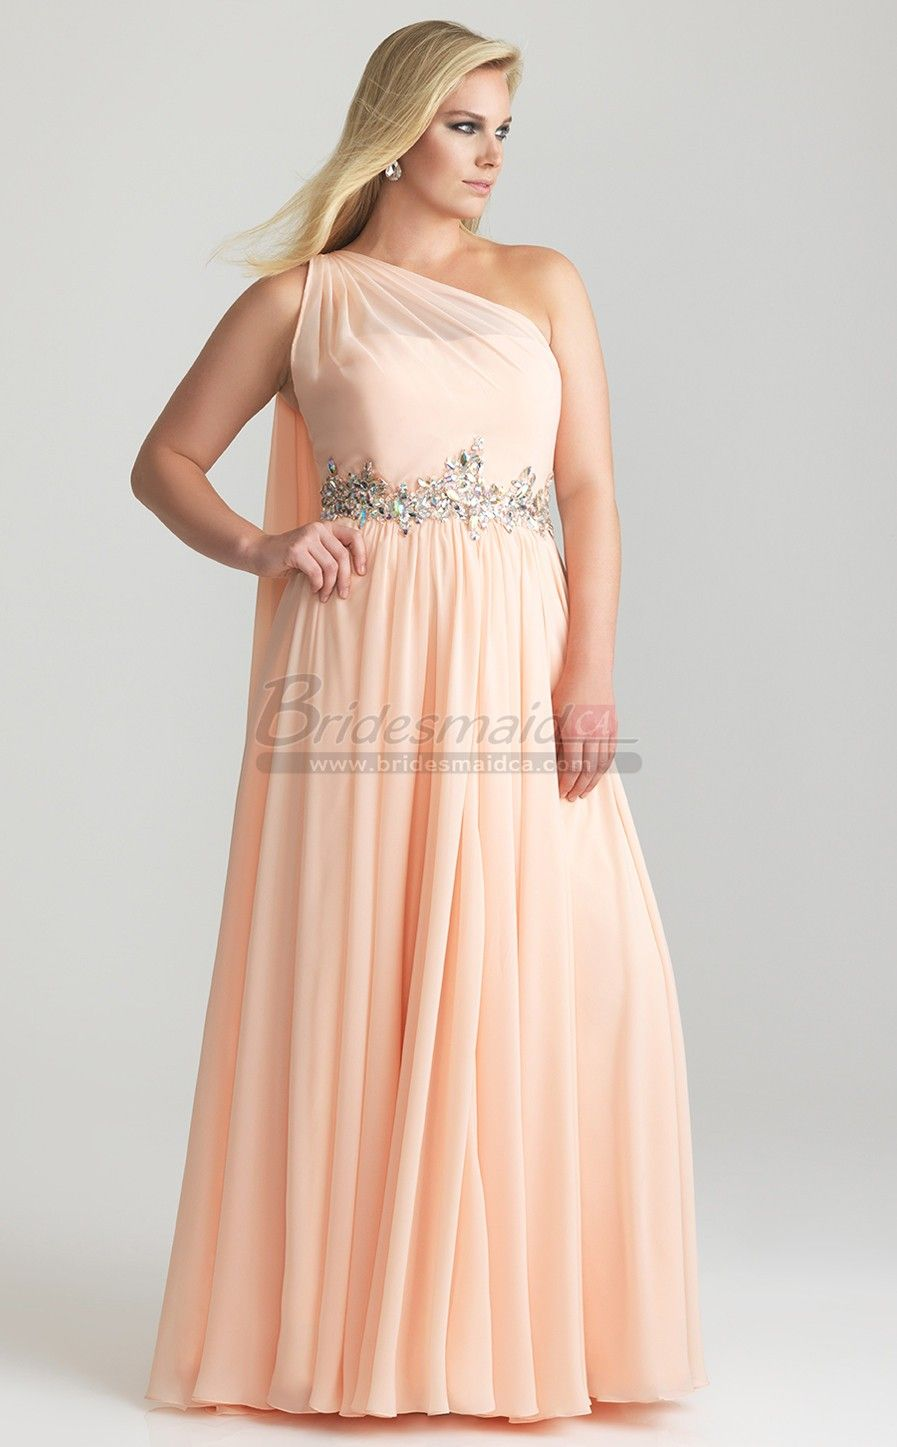 One shoulder chiffon long pearl pink plus size bridesmaid dress one shoulder chiffon long pearl pink plus size bridesmaid dress psdca 020 ombrellifo Images